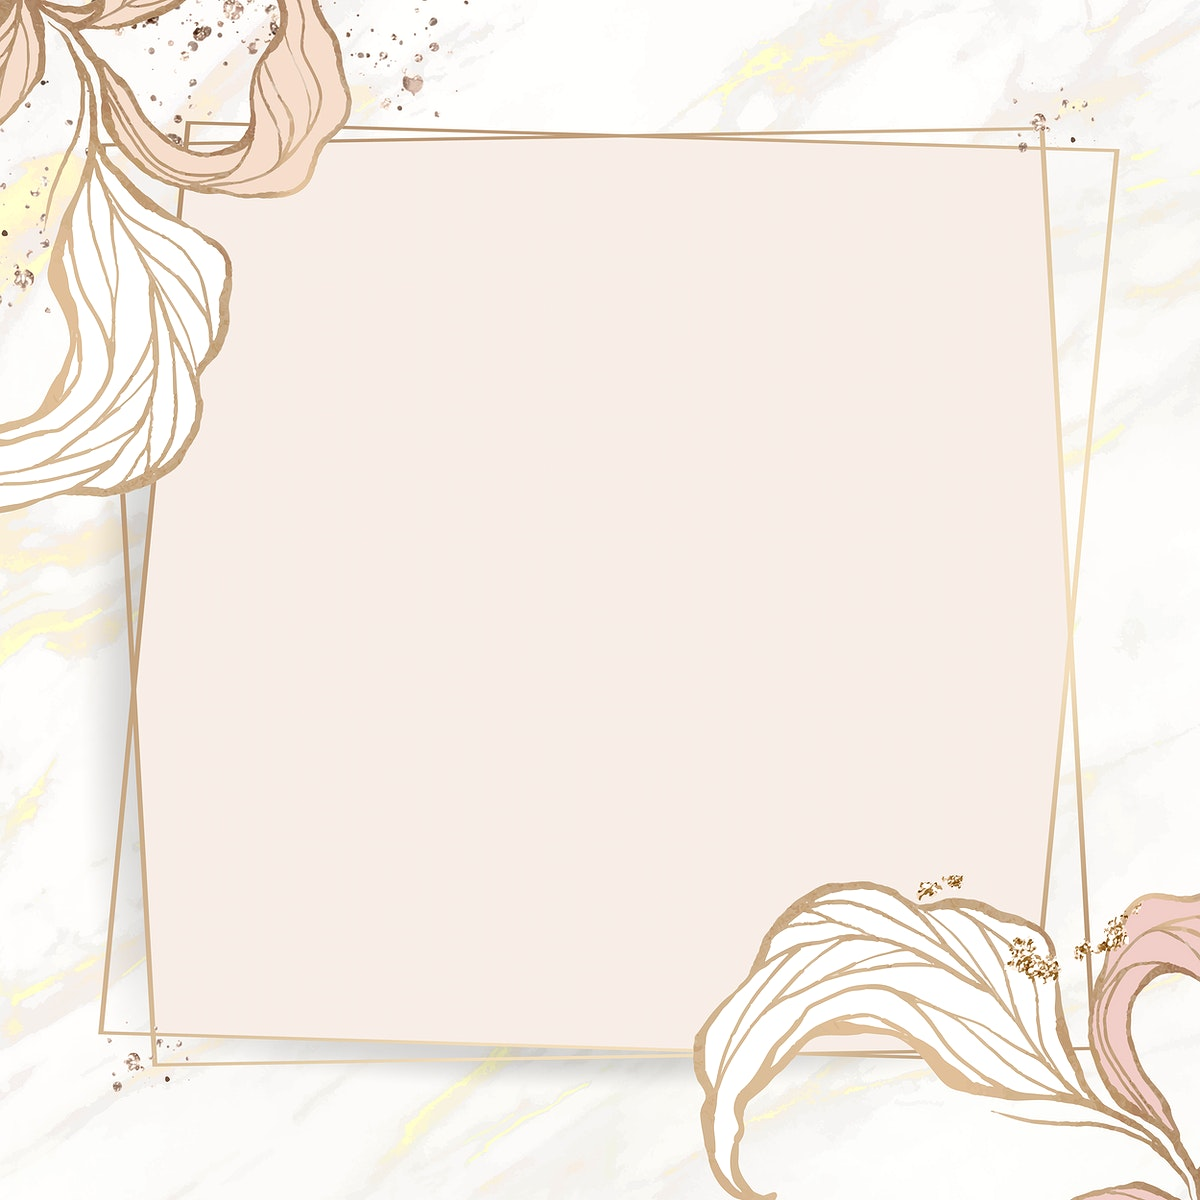 Rectangle frame with outline leaves decoration vector